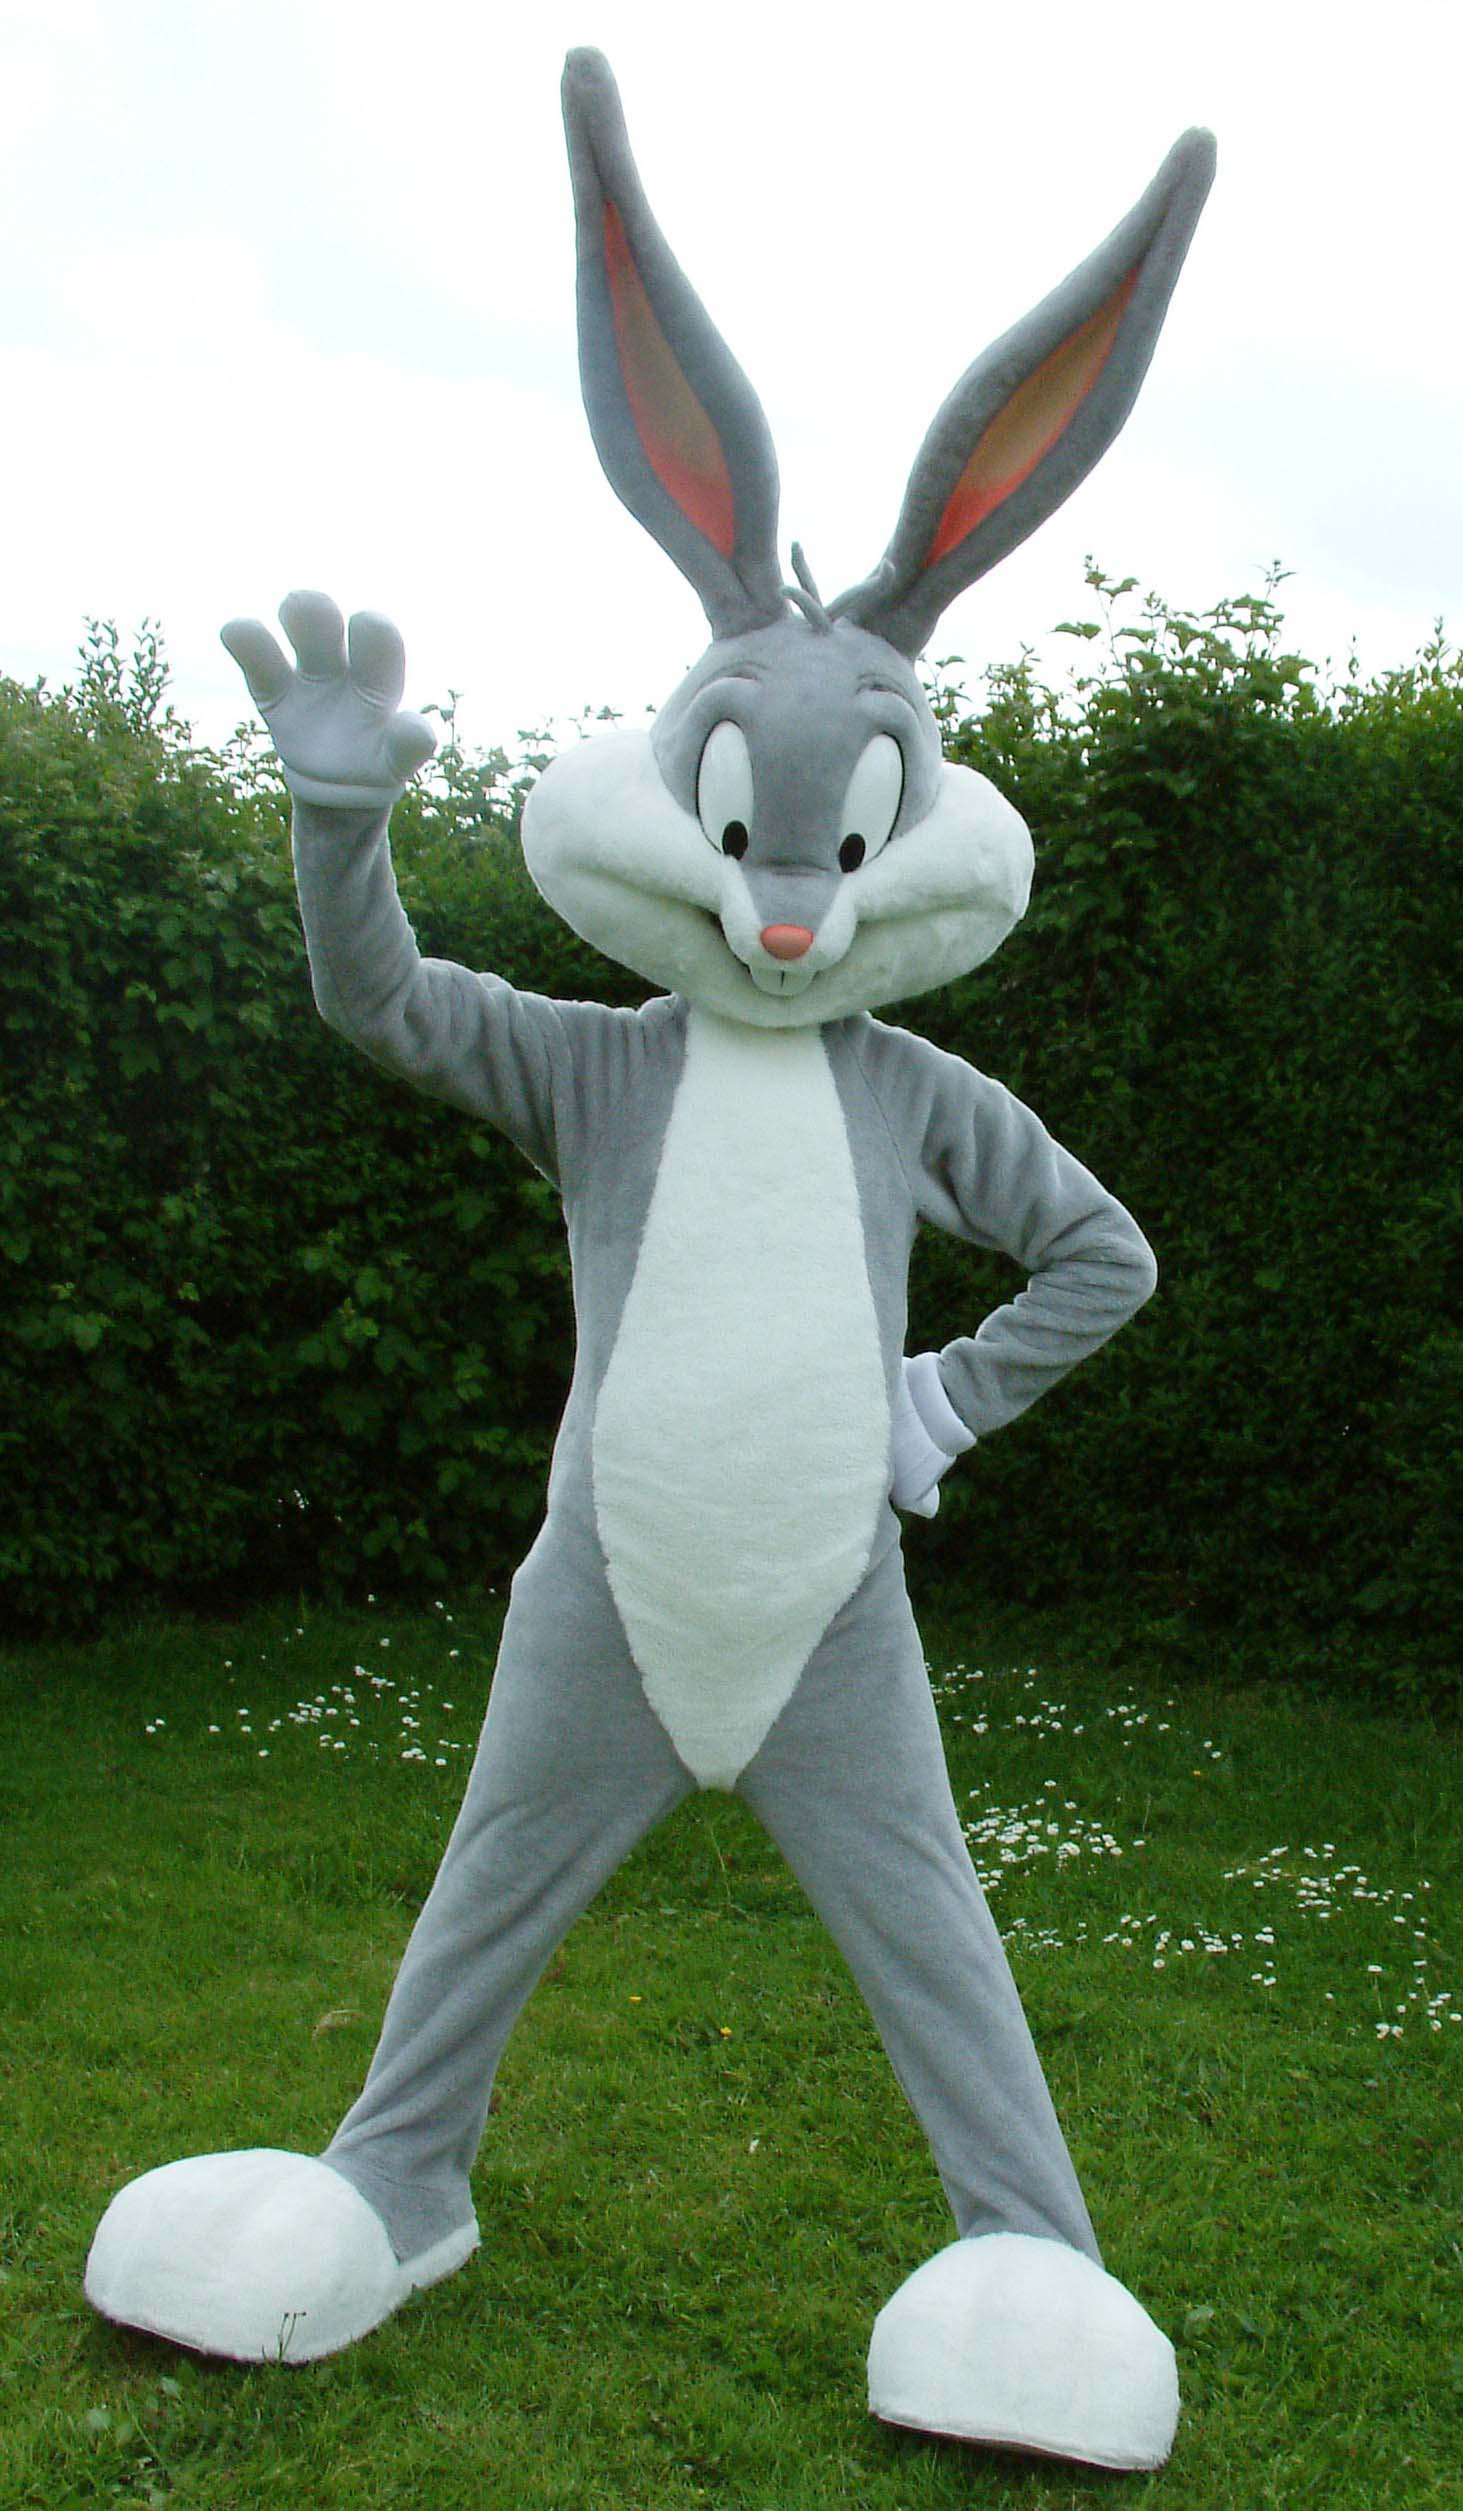 Bugs Bunny costume character mascot outdoors